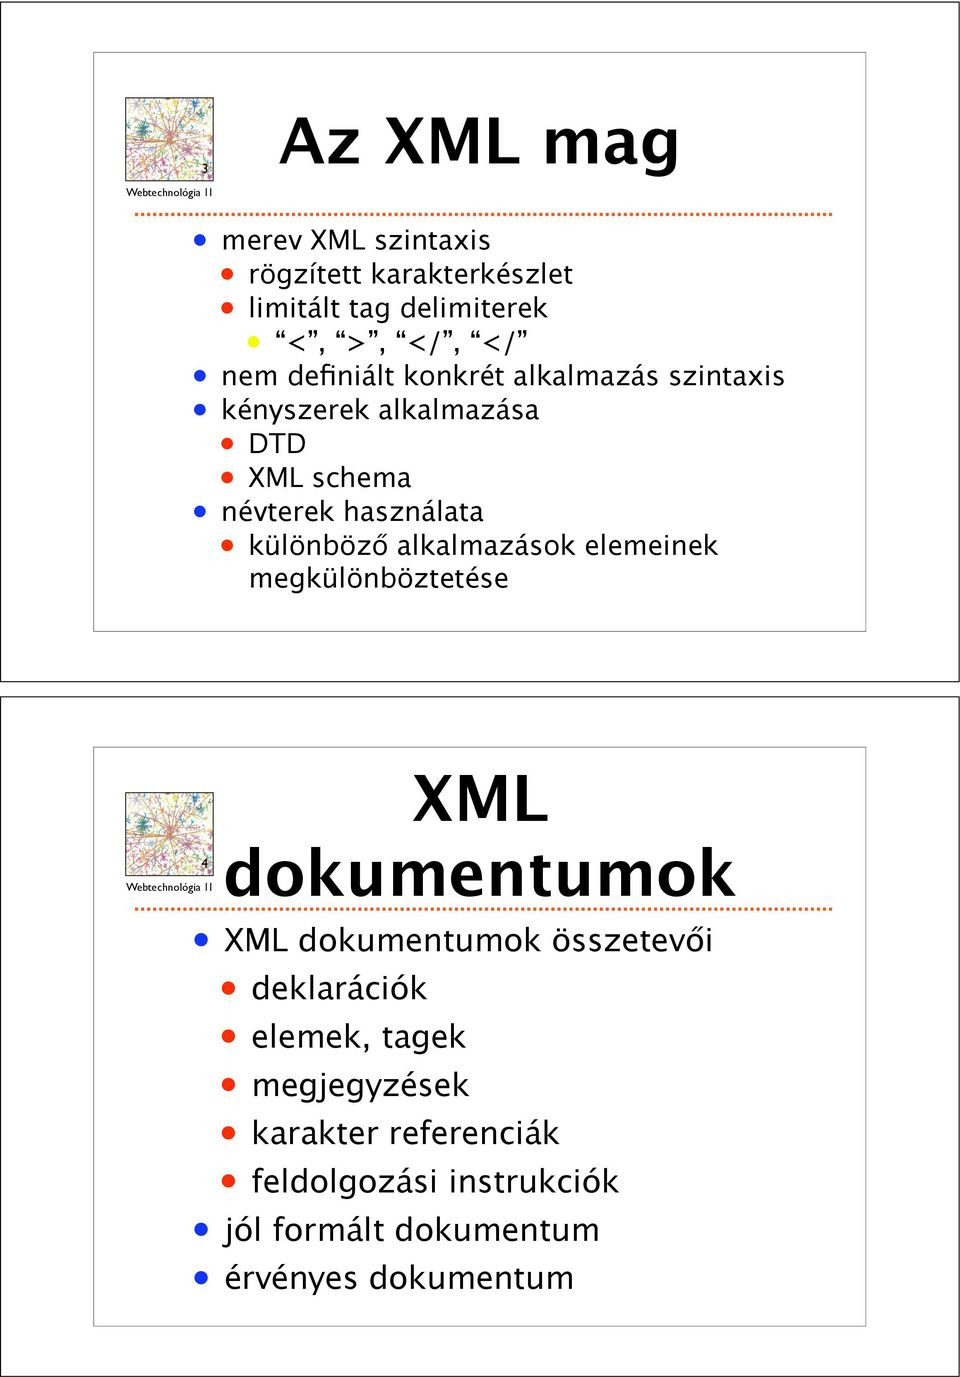 alkalmazások elemeinek megkülönböztetése THE INTERNET,mapped on the opposite page, is a scalefree network in that 4 XML dokumentumok XML